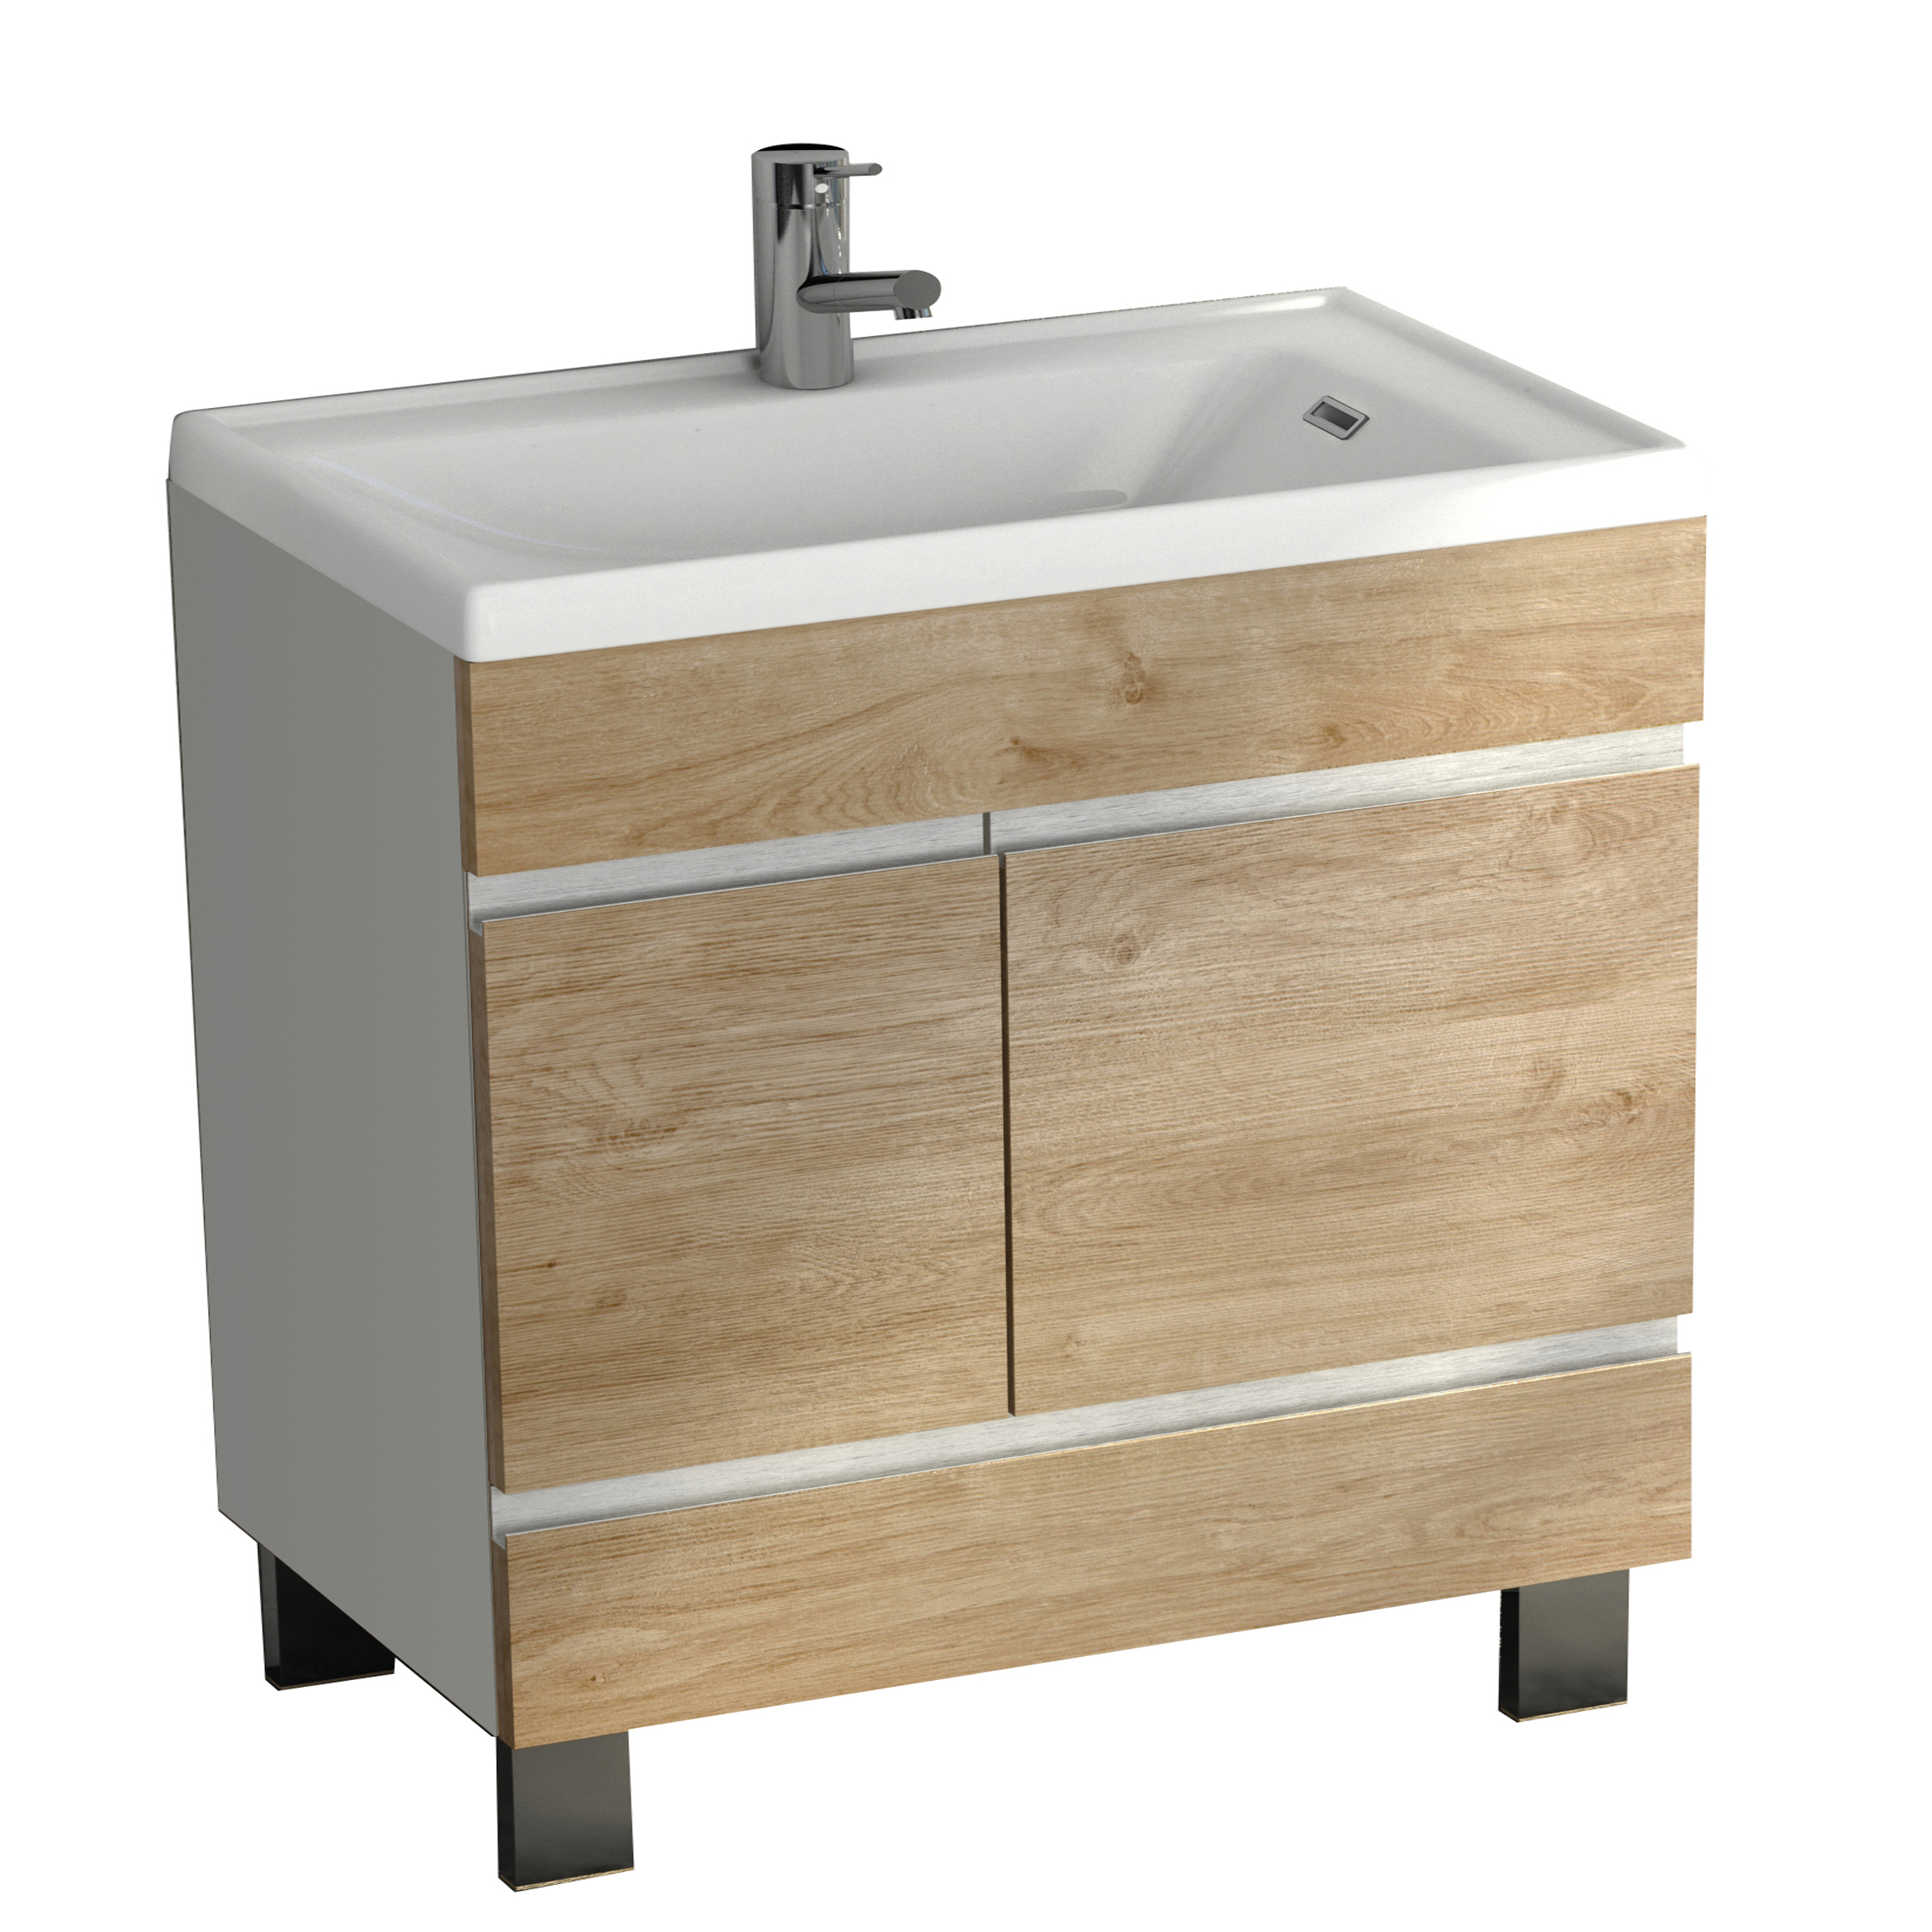 "EVVN540 24WHOAK A Main - Eviva Petite Plus 24"" White/Oak Vanity with Porcelain sink"